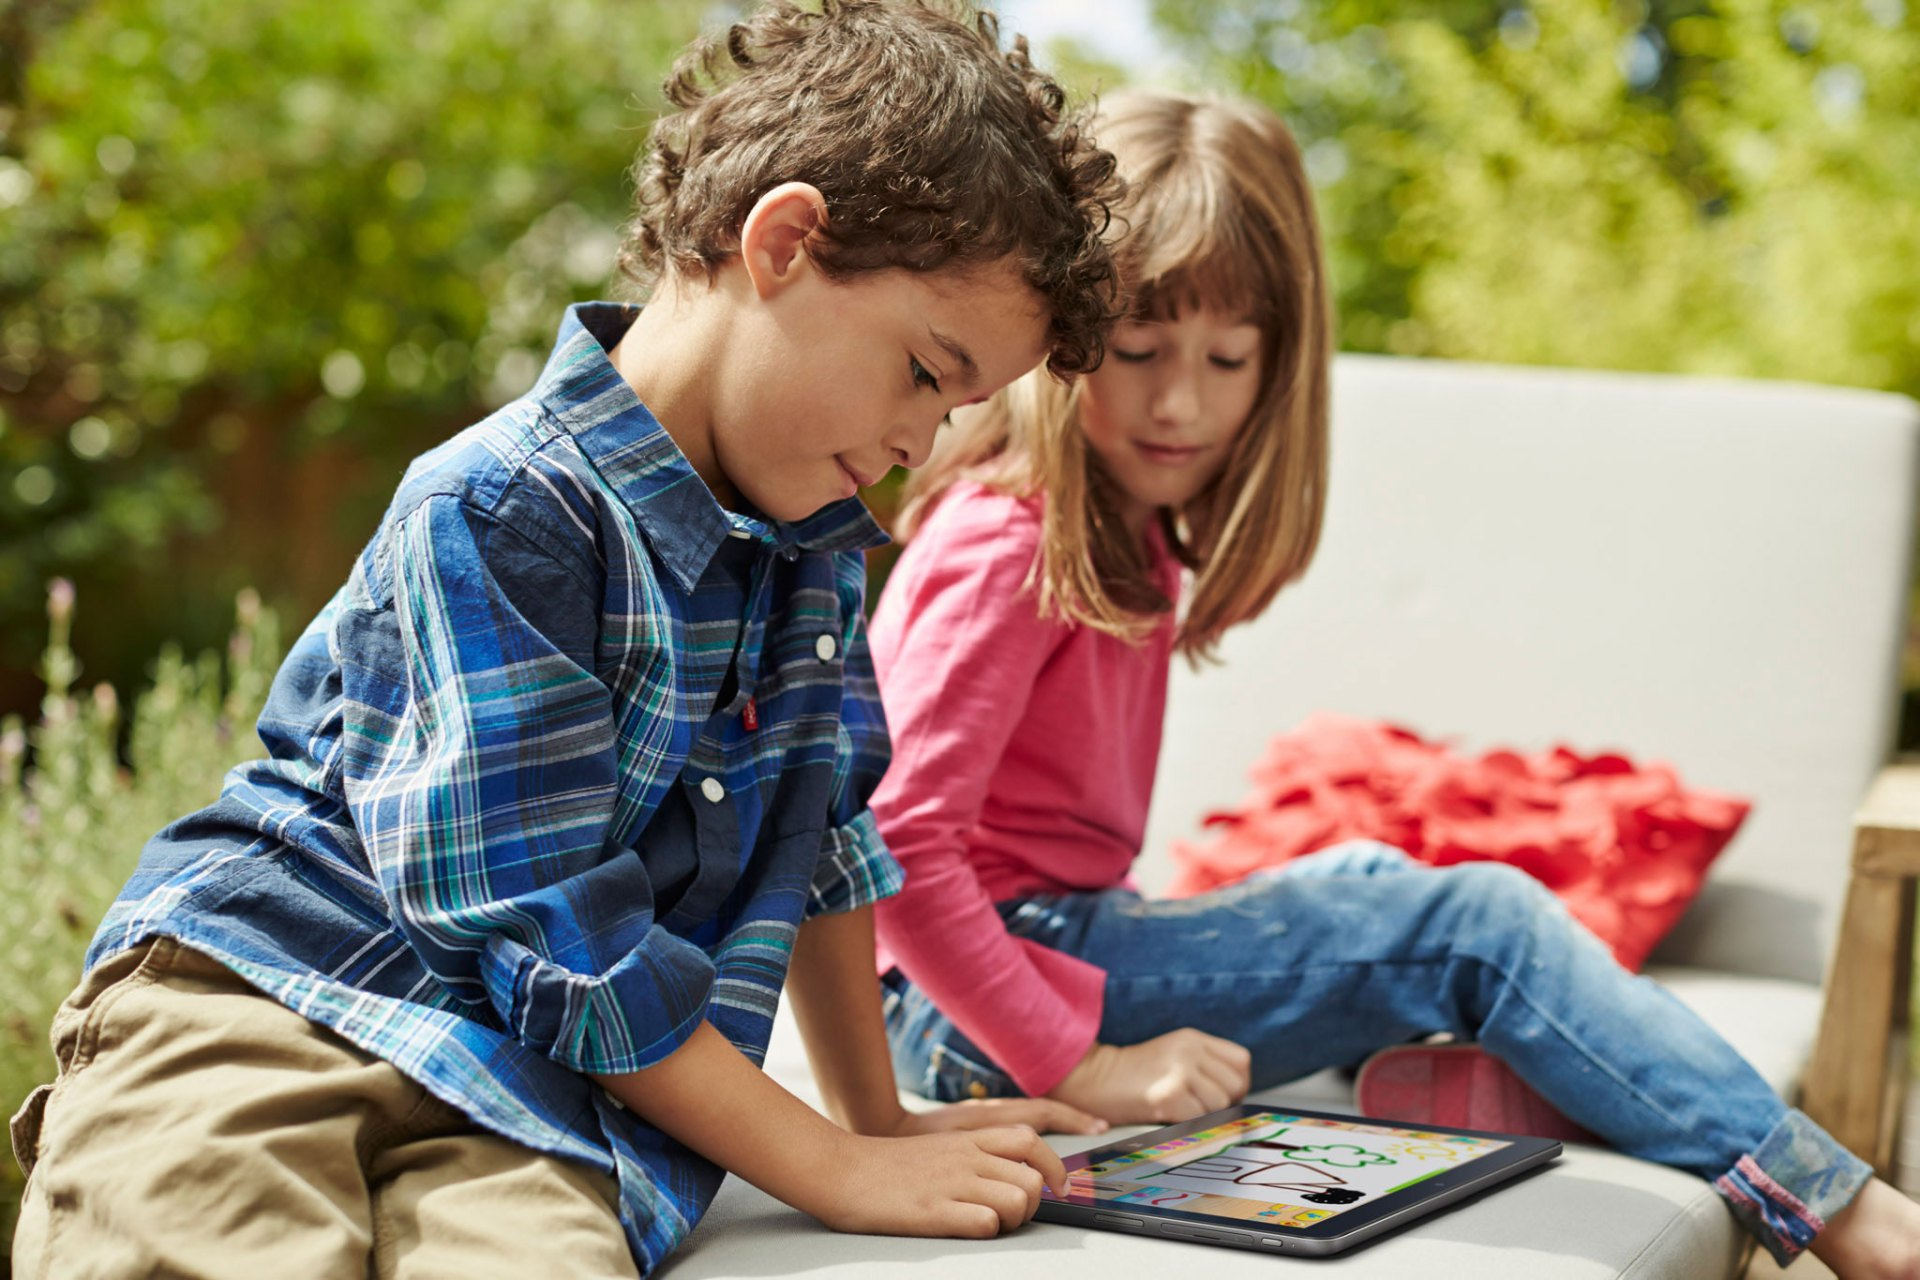 Two Children Using Venue 11 Pro 7000 Series Windows Tablet